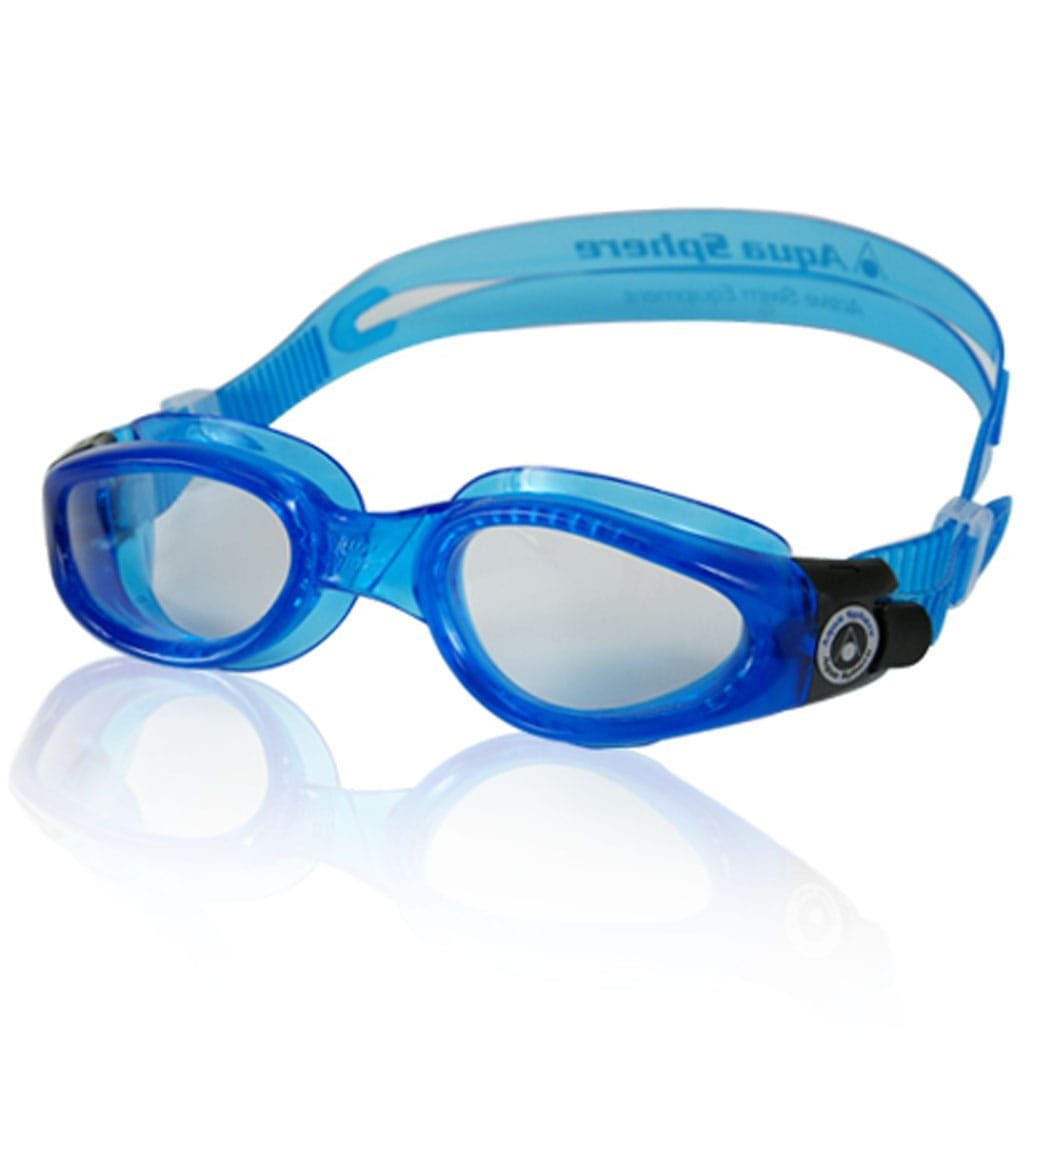 save up to 80% new product hot product Aqua Sphere Kaiman Goggle Clear Lens